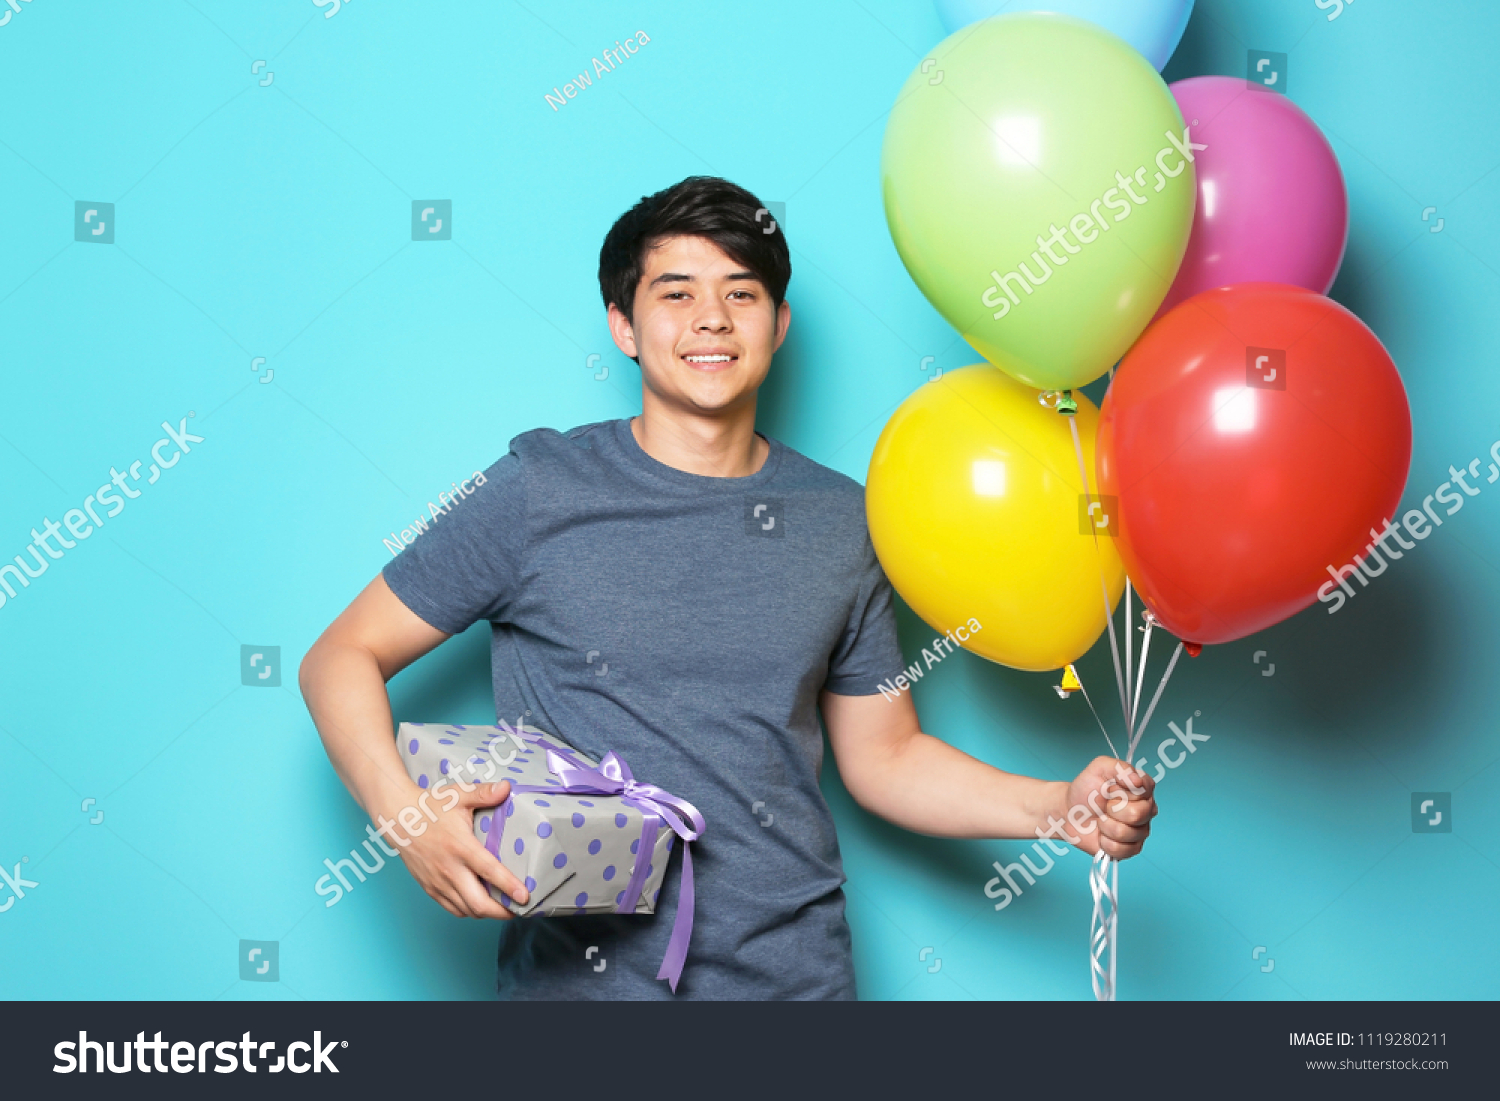 Young Man With Bright Balloons And Birthday Gift On Color Background